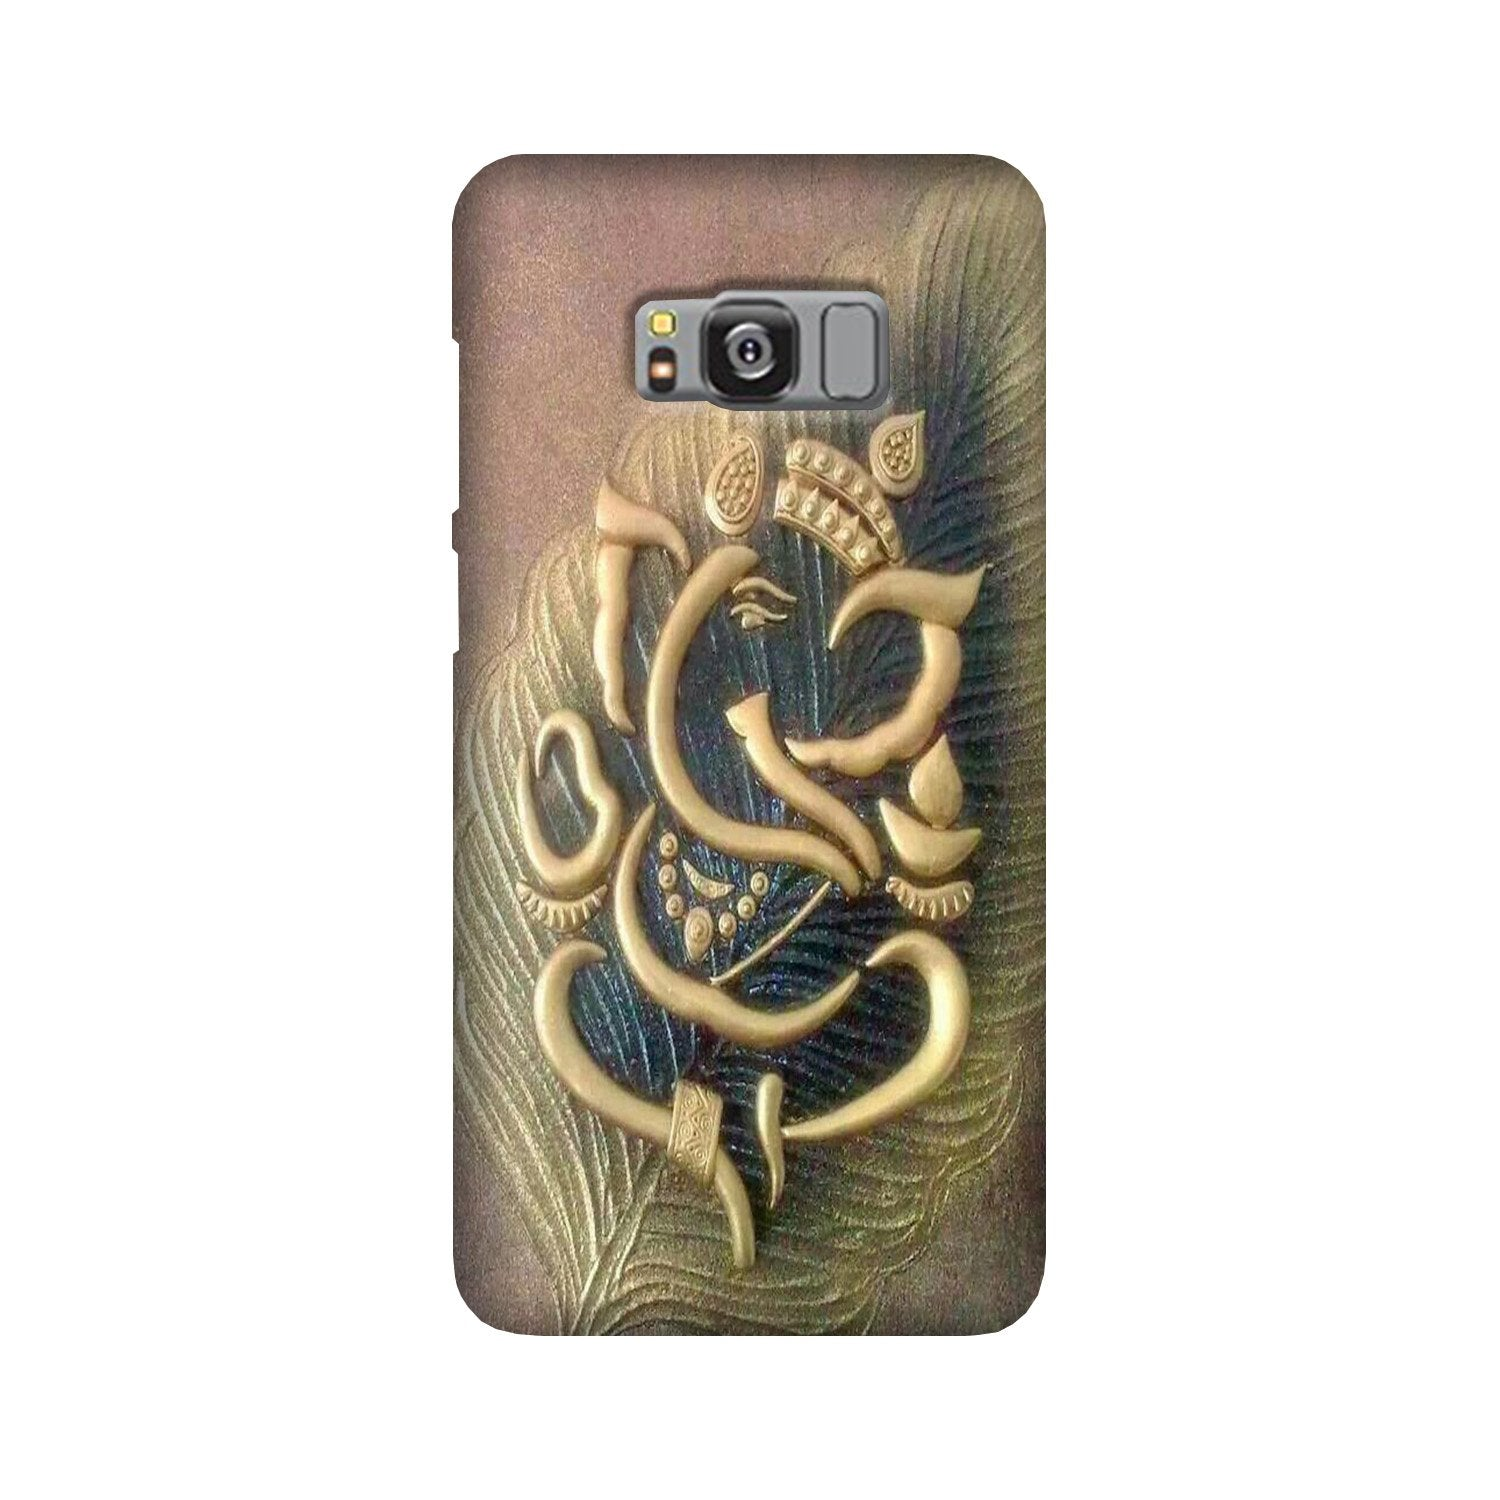 Lord Ganesha Case for Galaxy S8 Plus